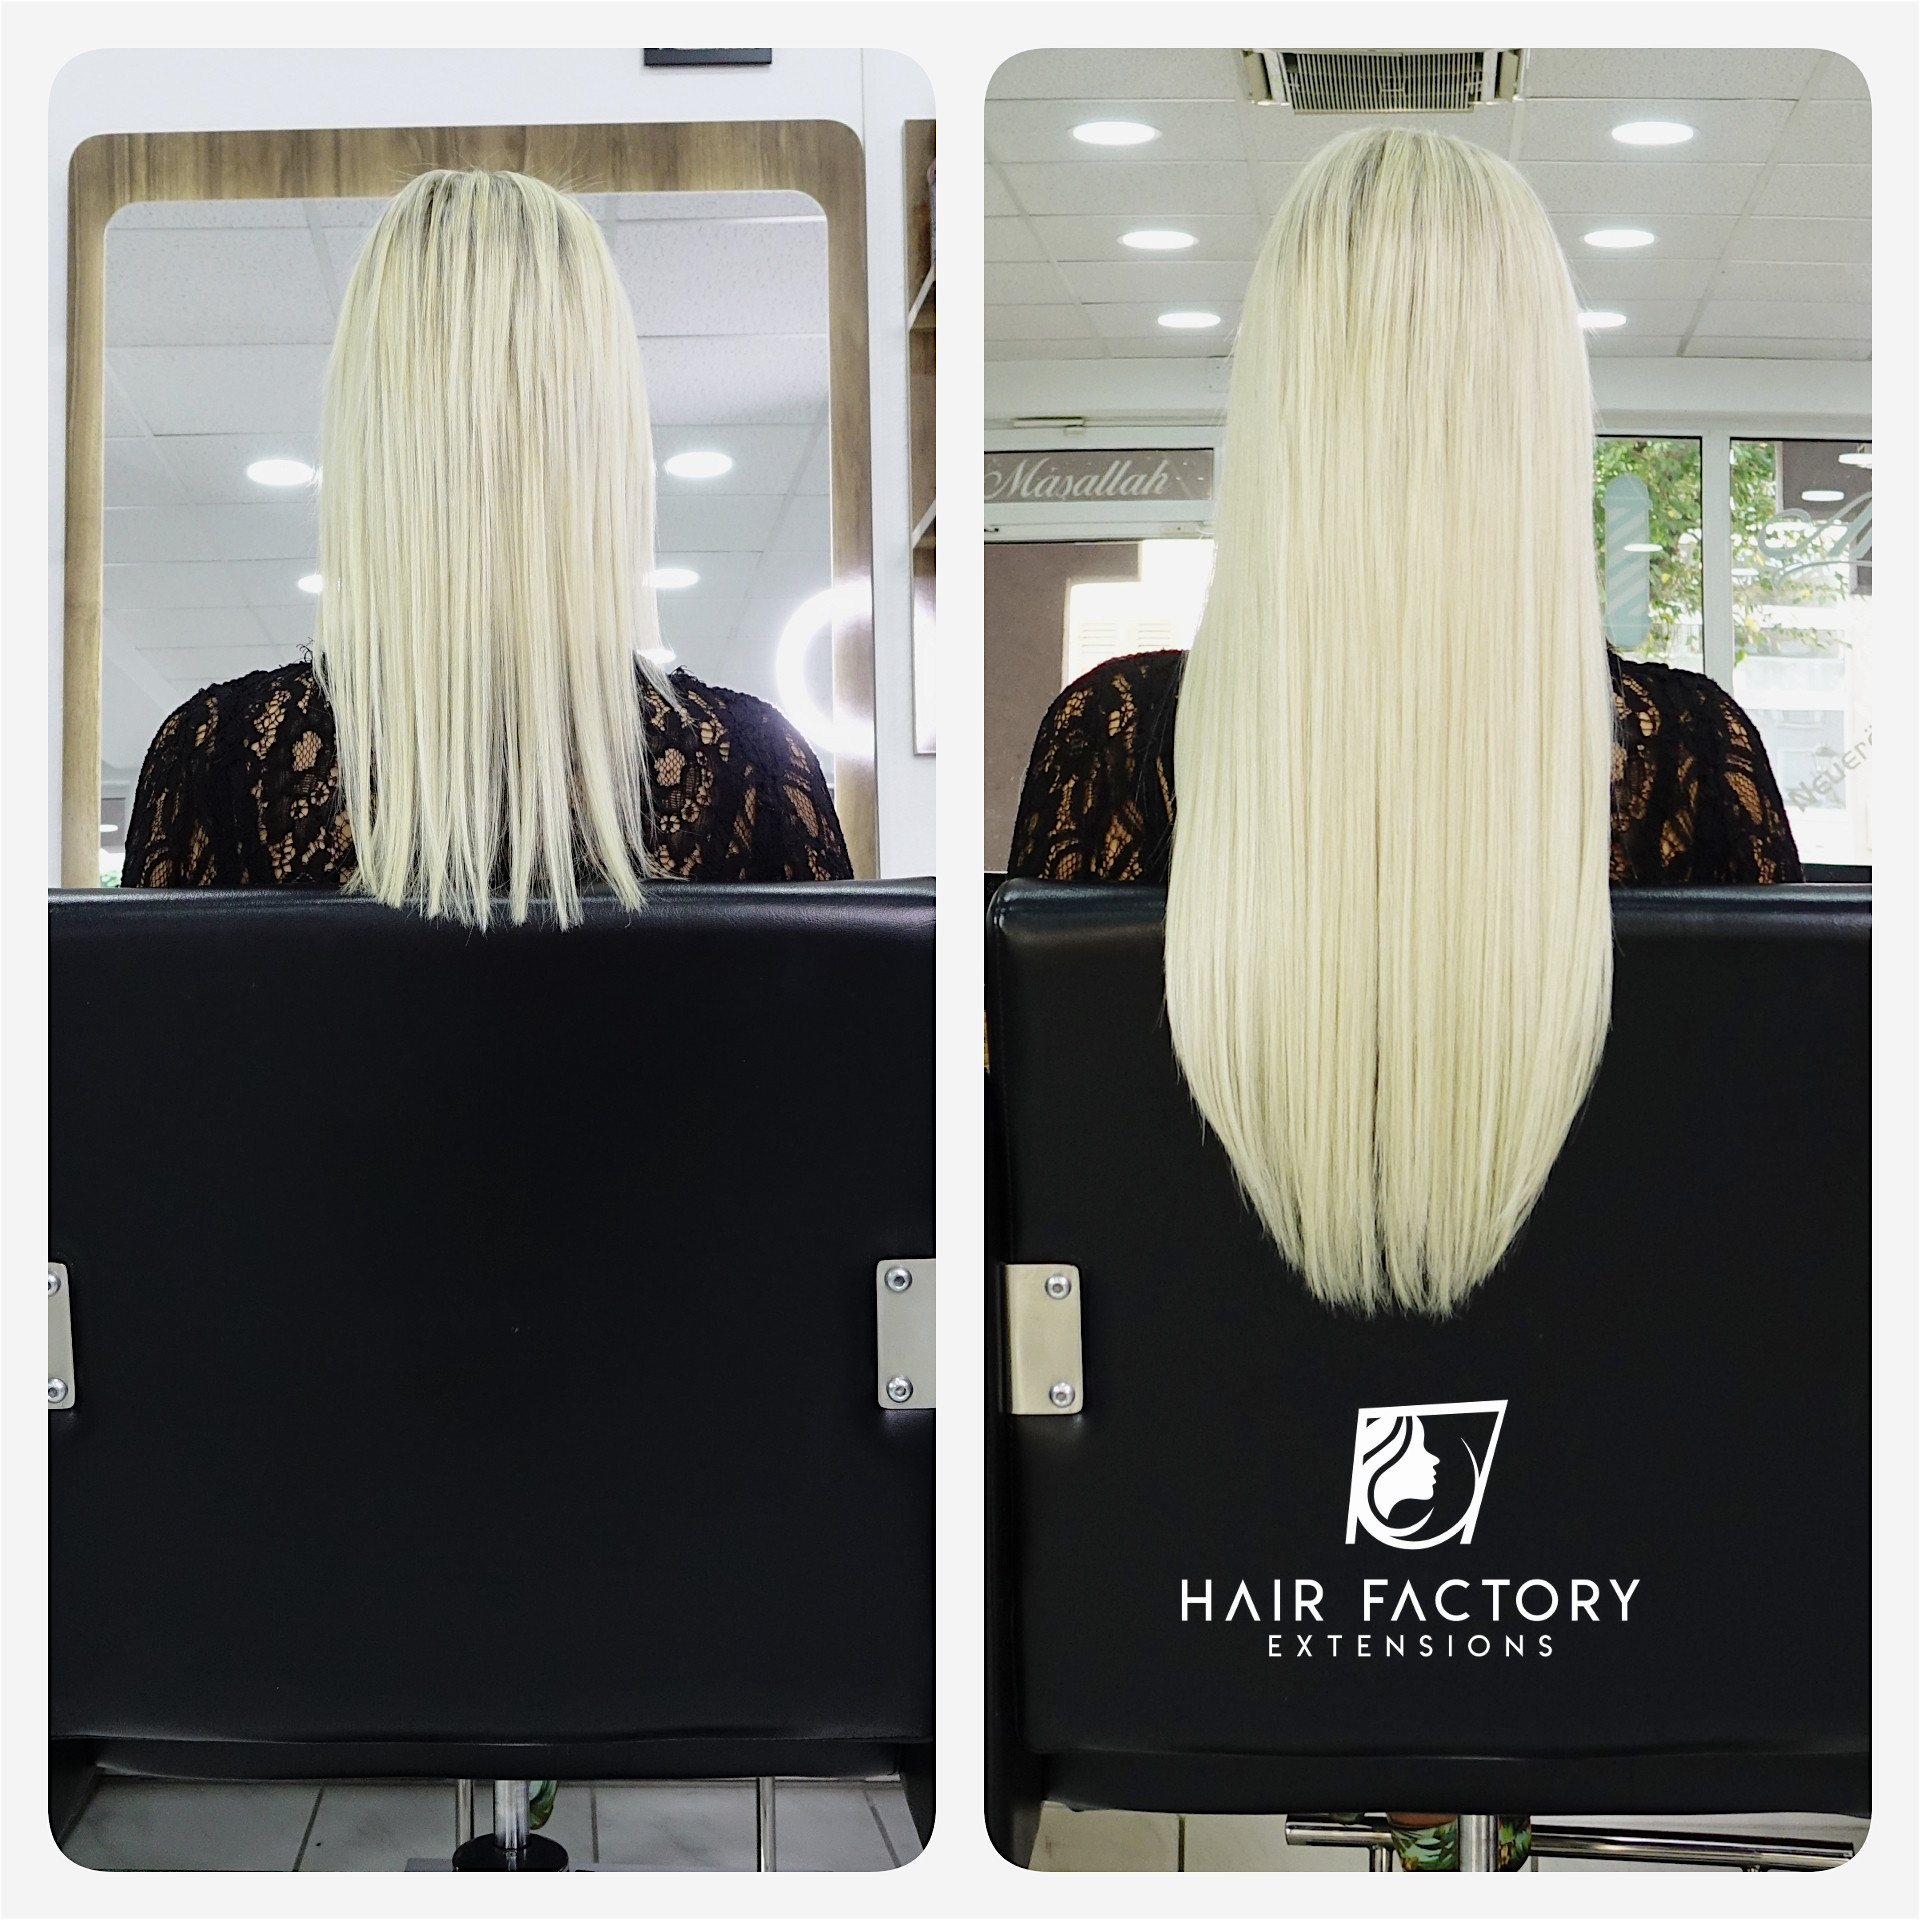 wlosy_doczepiane_blond_hair_factory_extensions